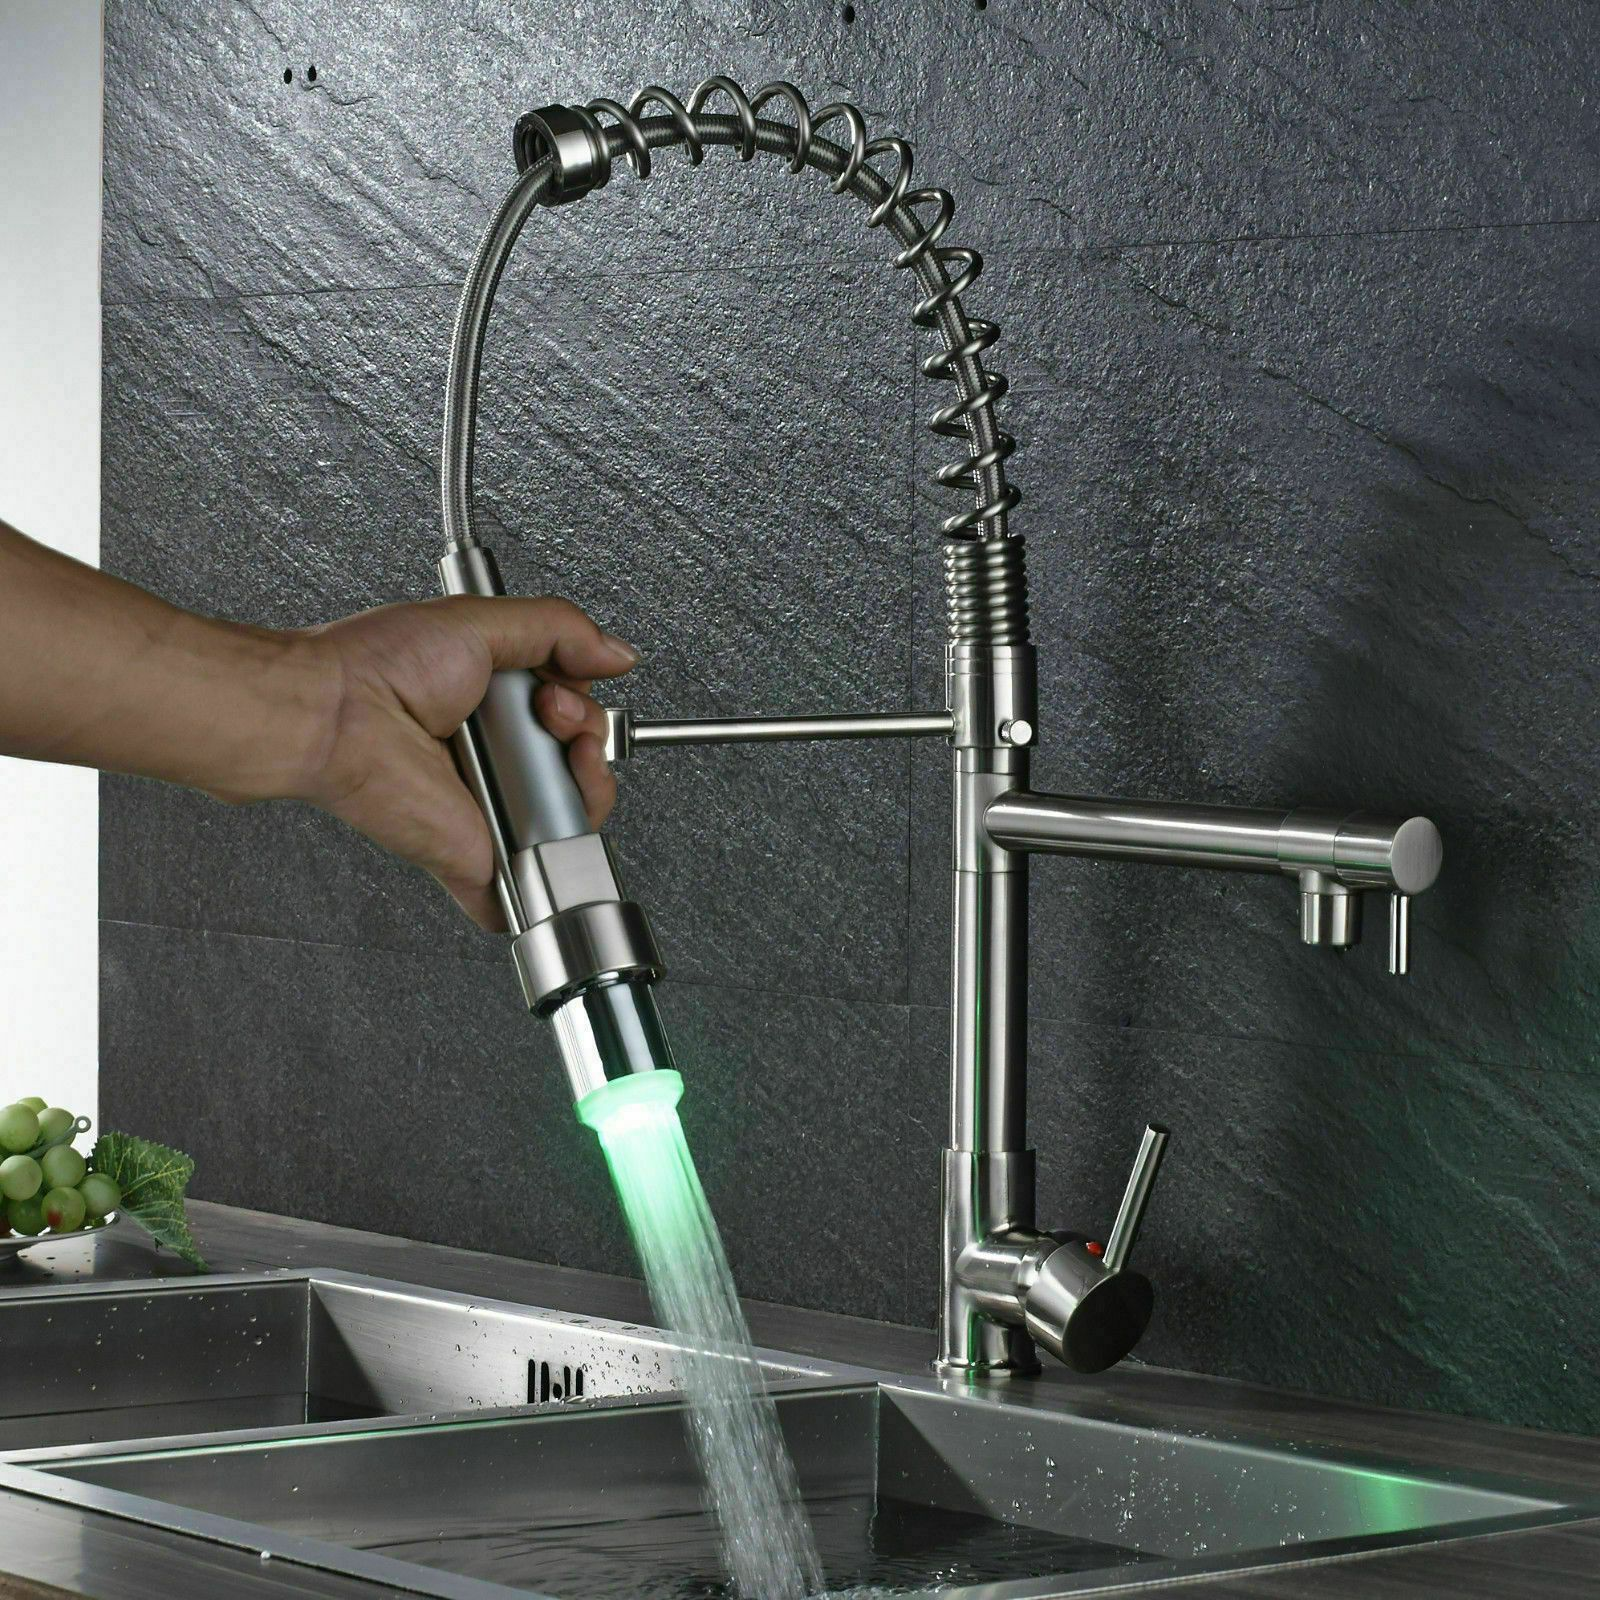 Led Kitchen Faucet Chrome Spring Deck Mount Pull Down Sprayer Sink